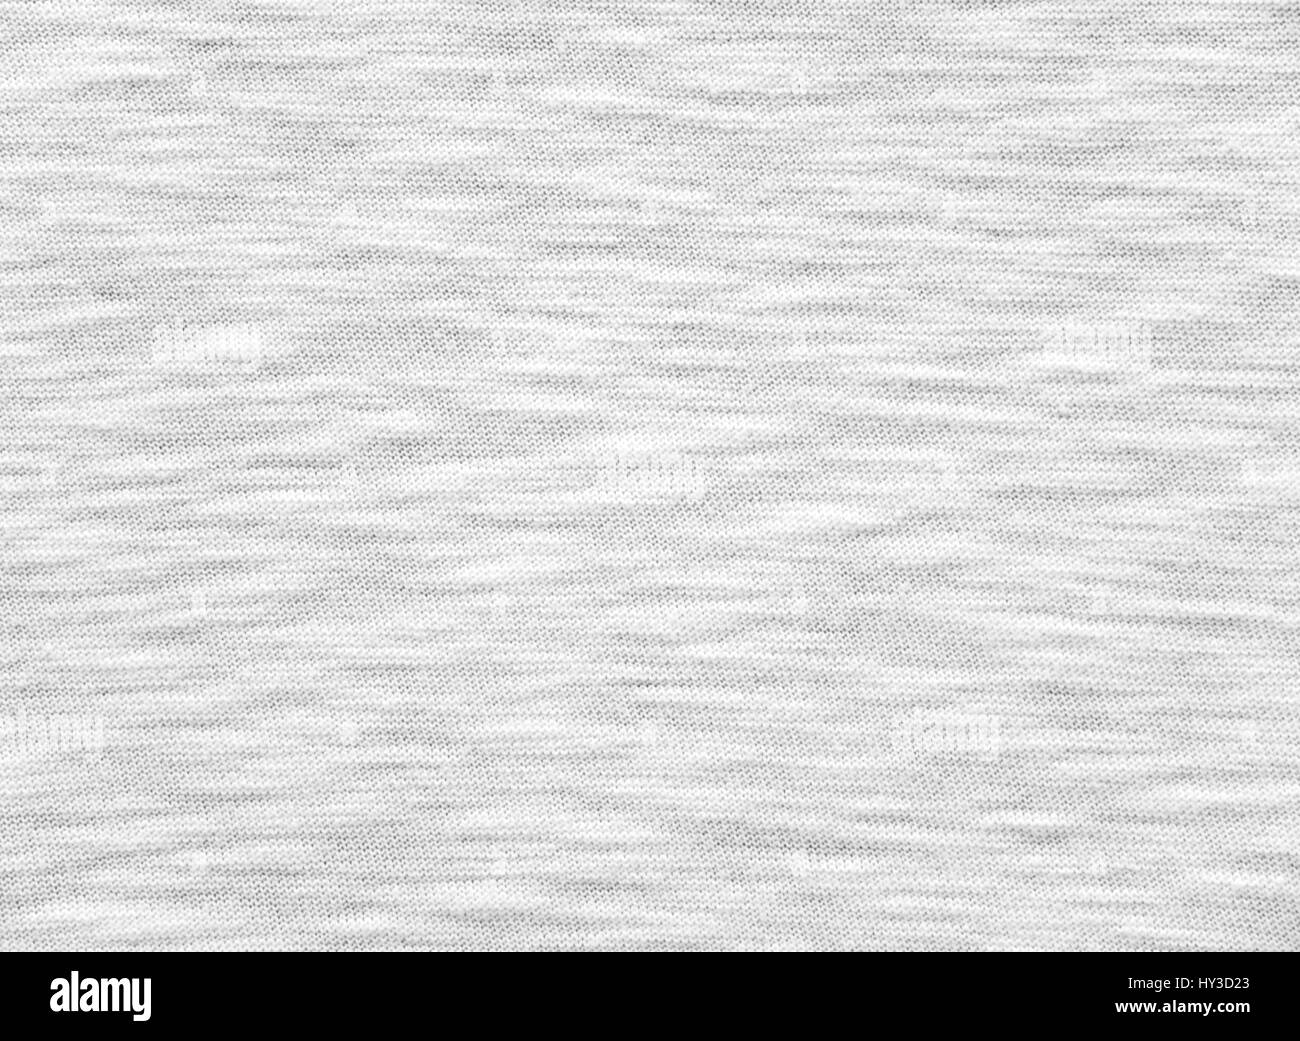 White breezy t-shirt cotton knitted fabric texture - Stock Image